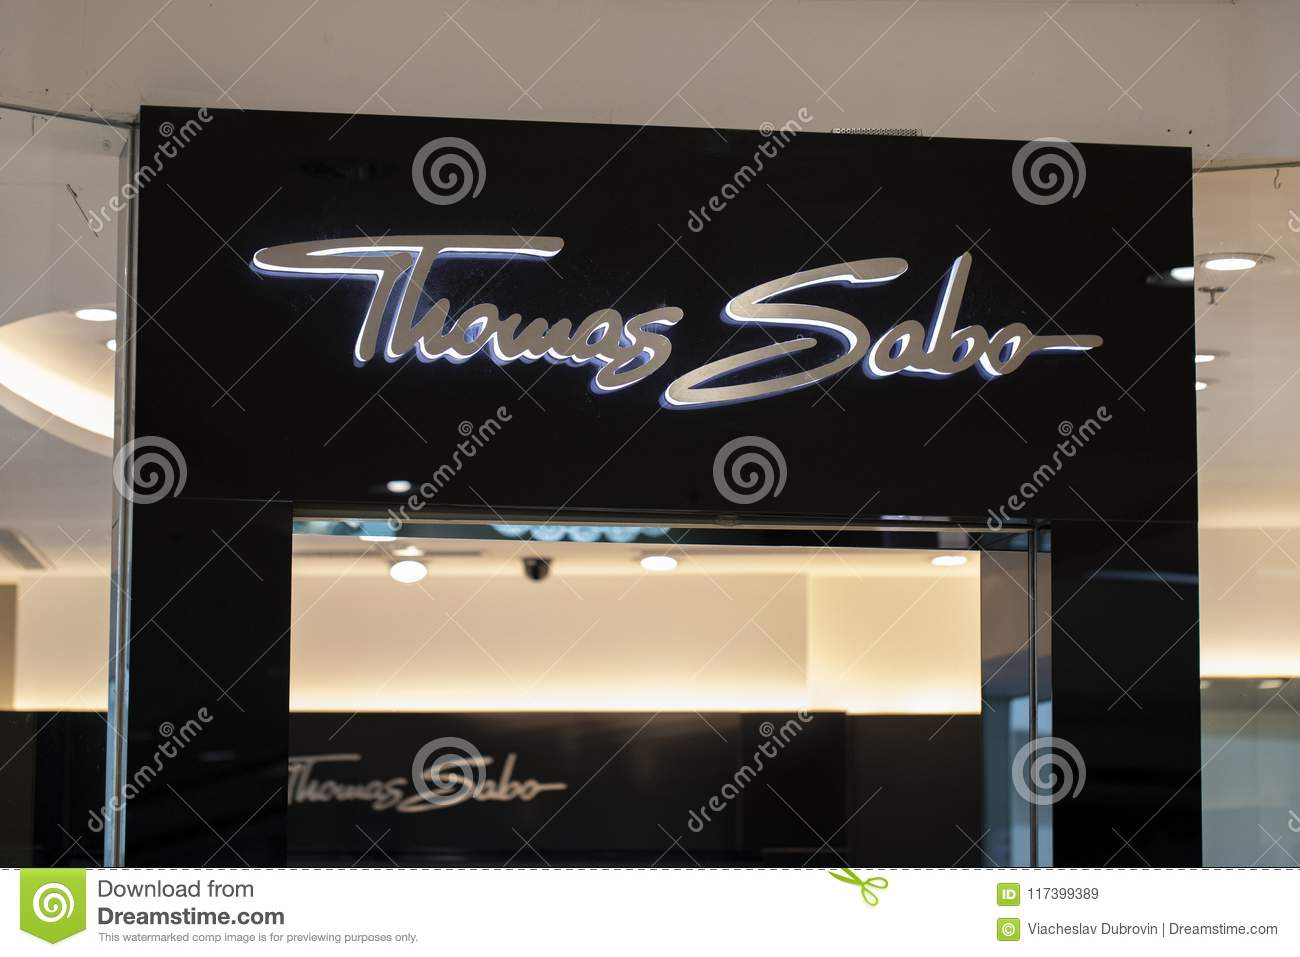 616f469ba Manila, Philippines, 22 March 2018 - Thomas Sabo brand name on store  entrance in SM Mall of Asia shopping mall.